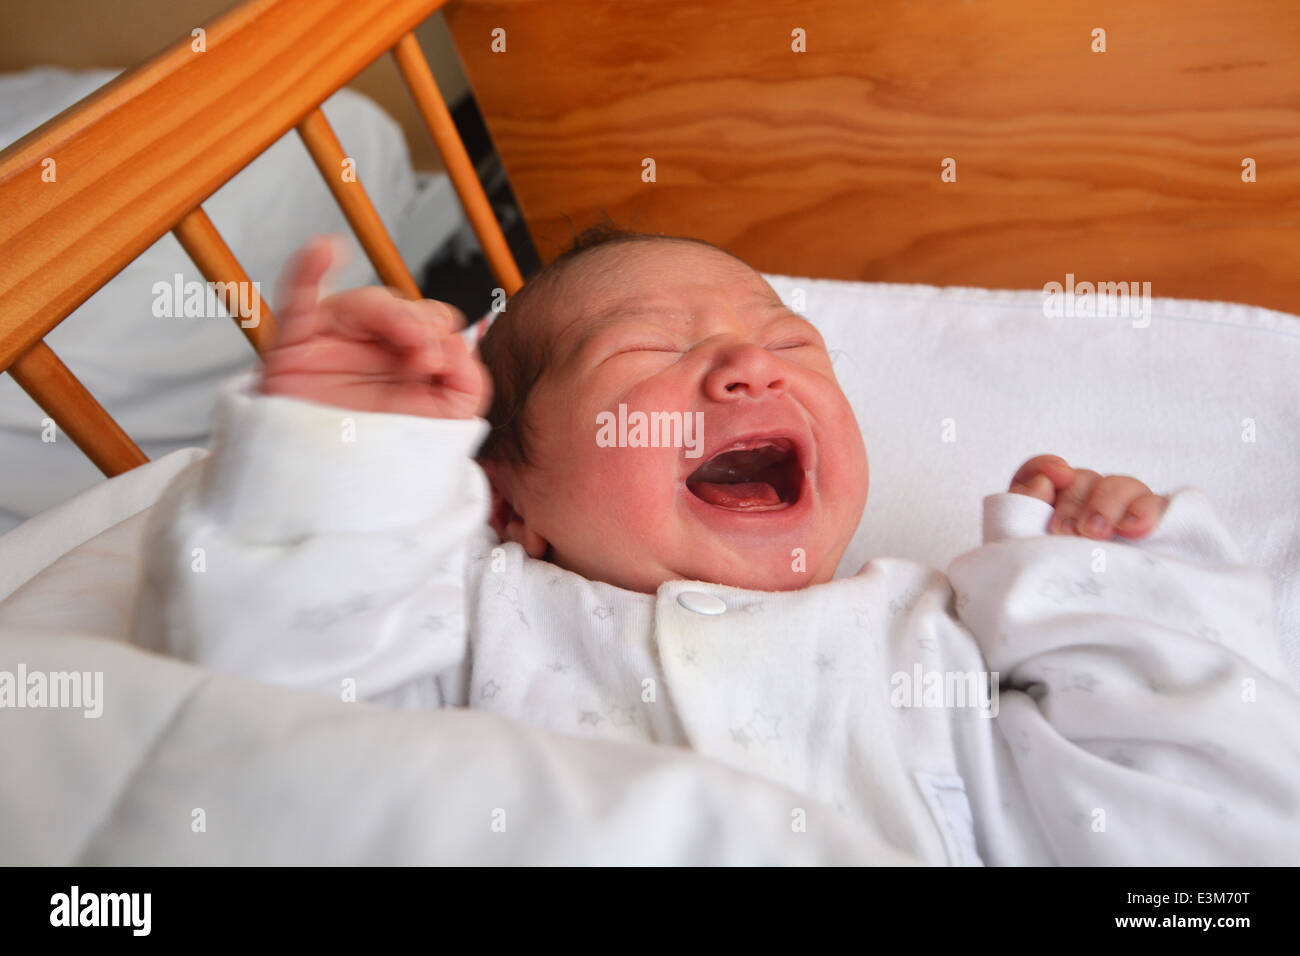 Newborn baby 1 day old screaming in baby cot bed